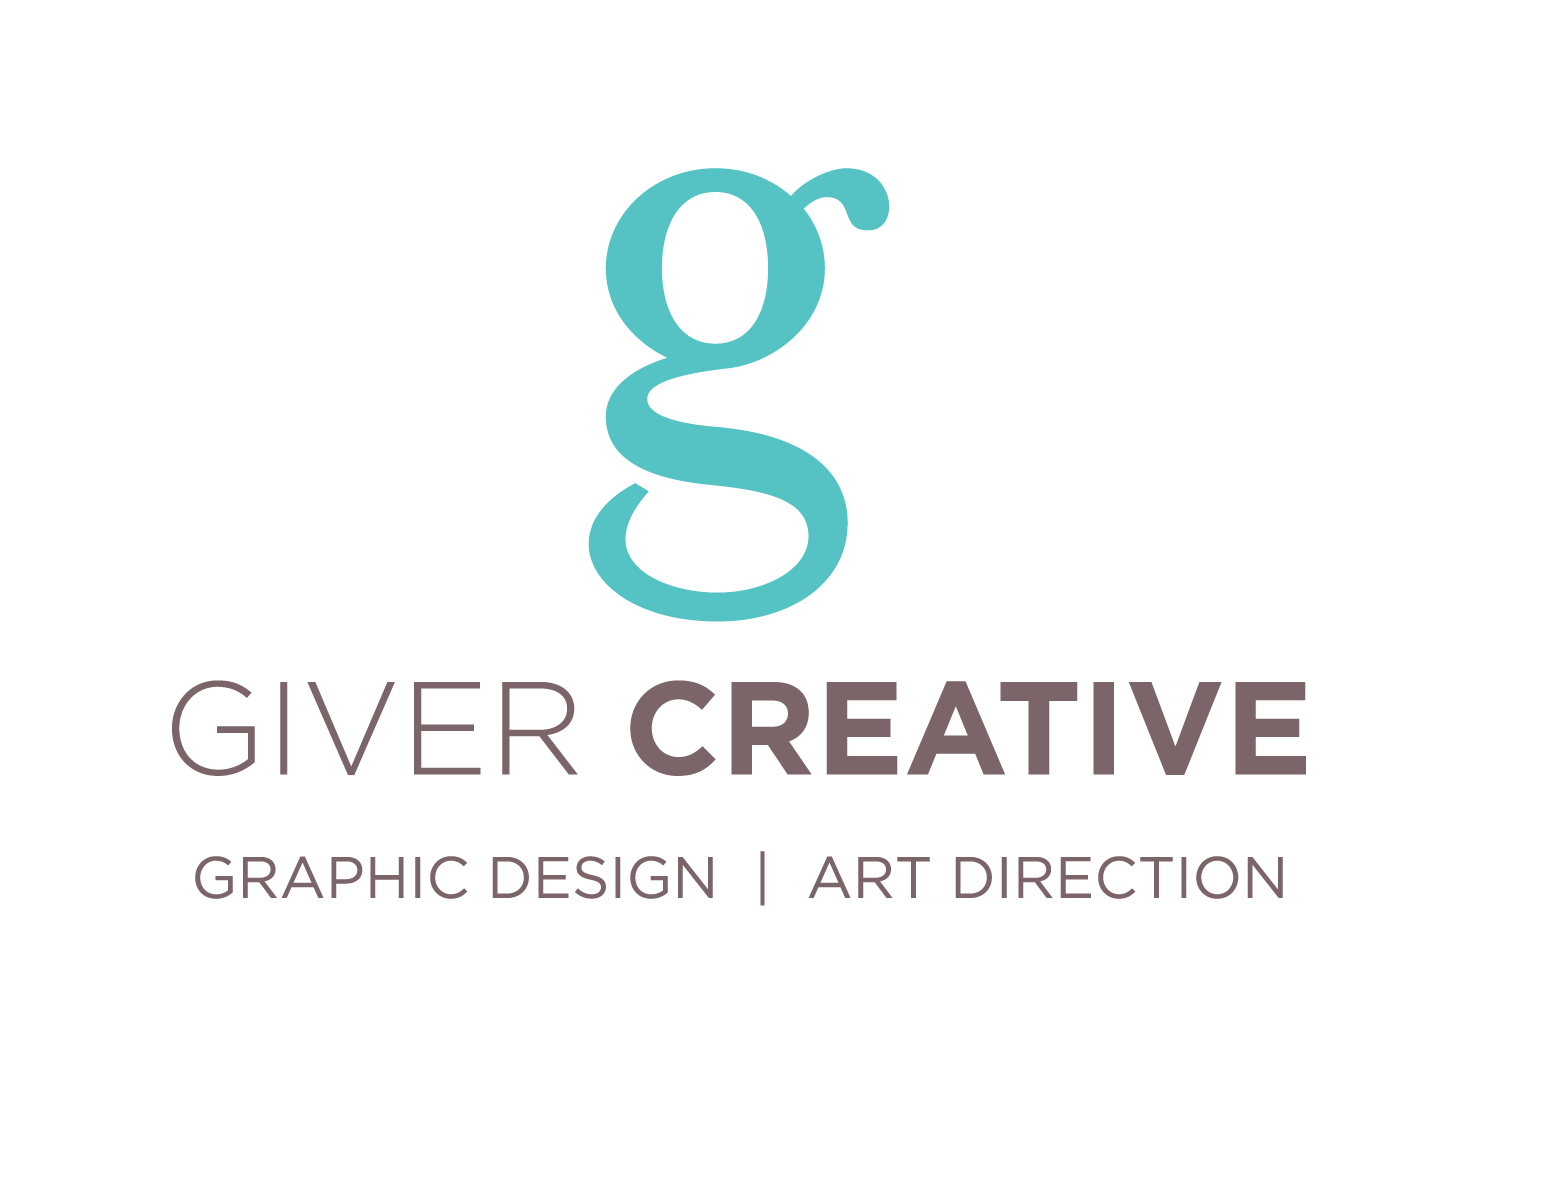 GiverCreative_logo_stacked